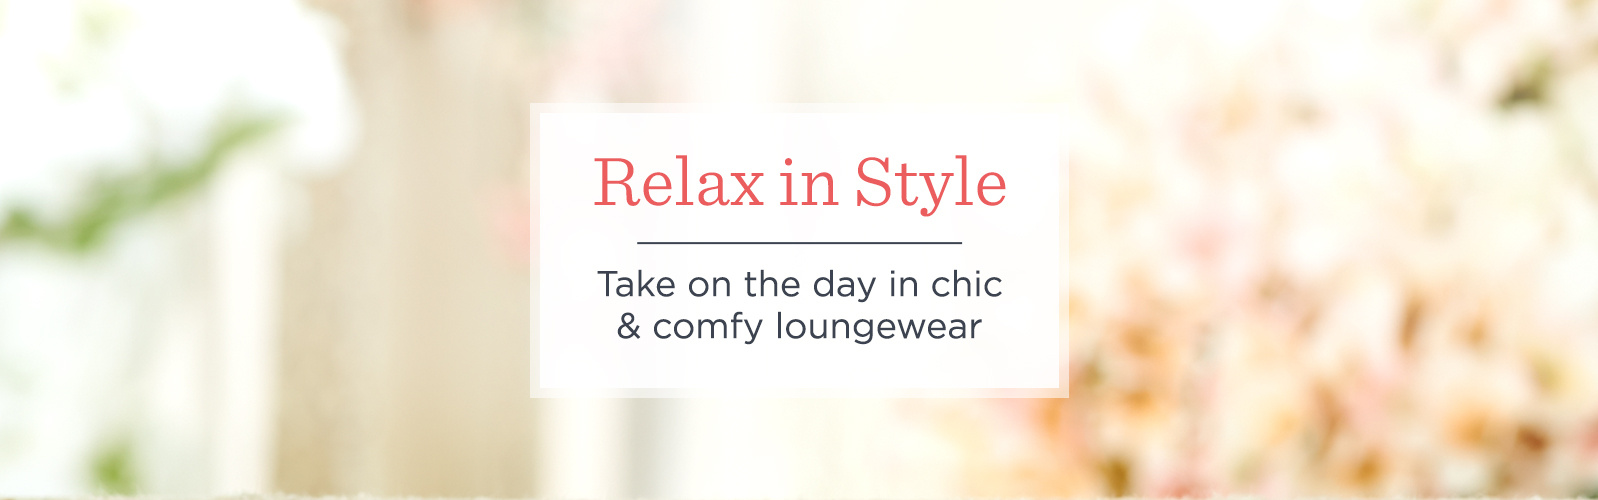 Relax in Style. Take on the day in chic & comfy loungewear